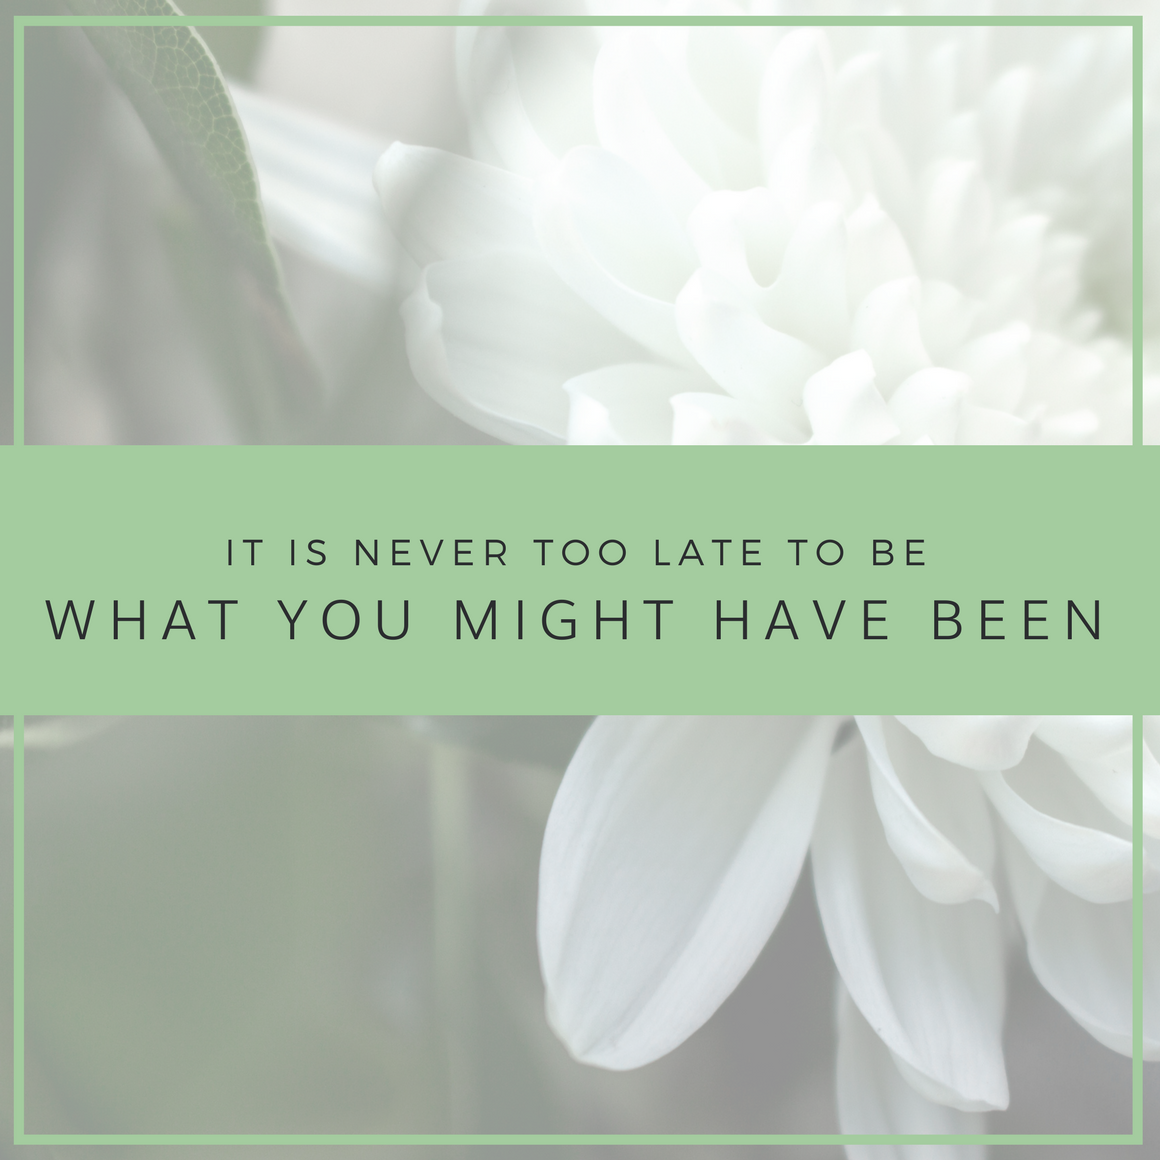 it is never too late to be what you might have been